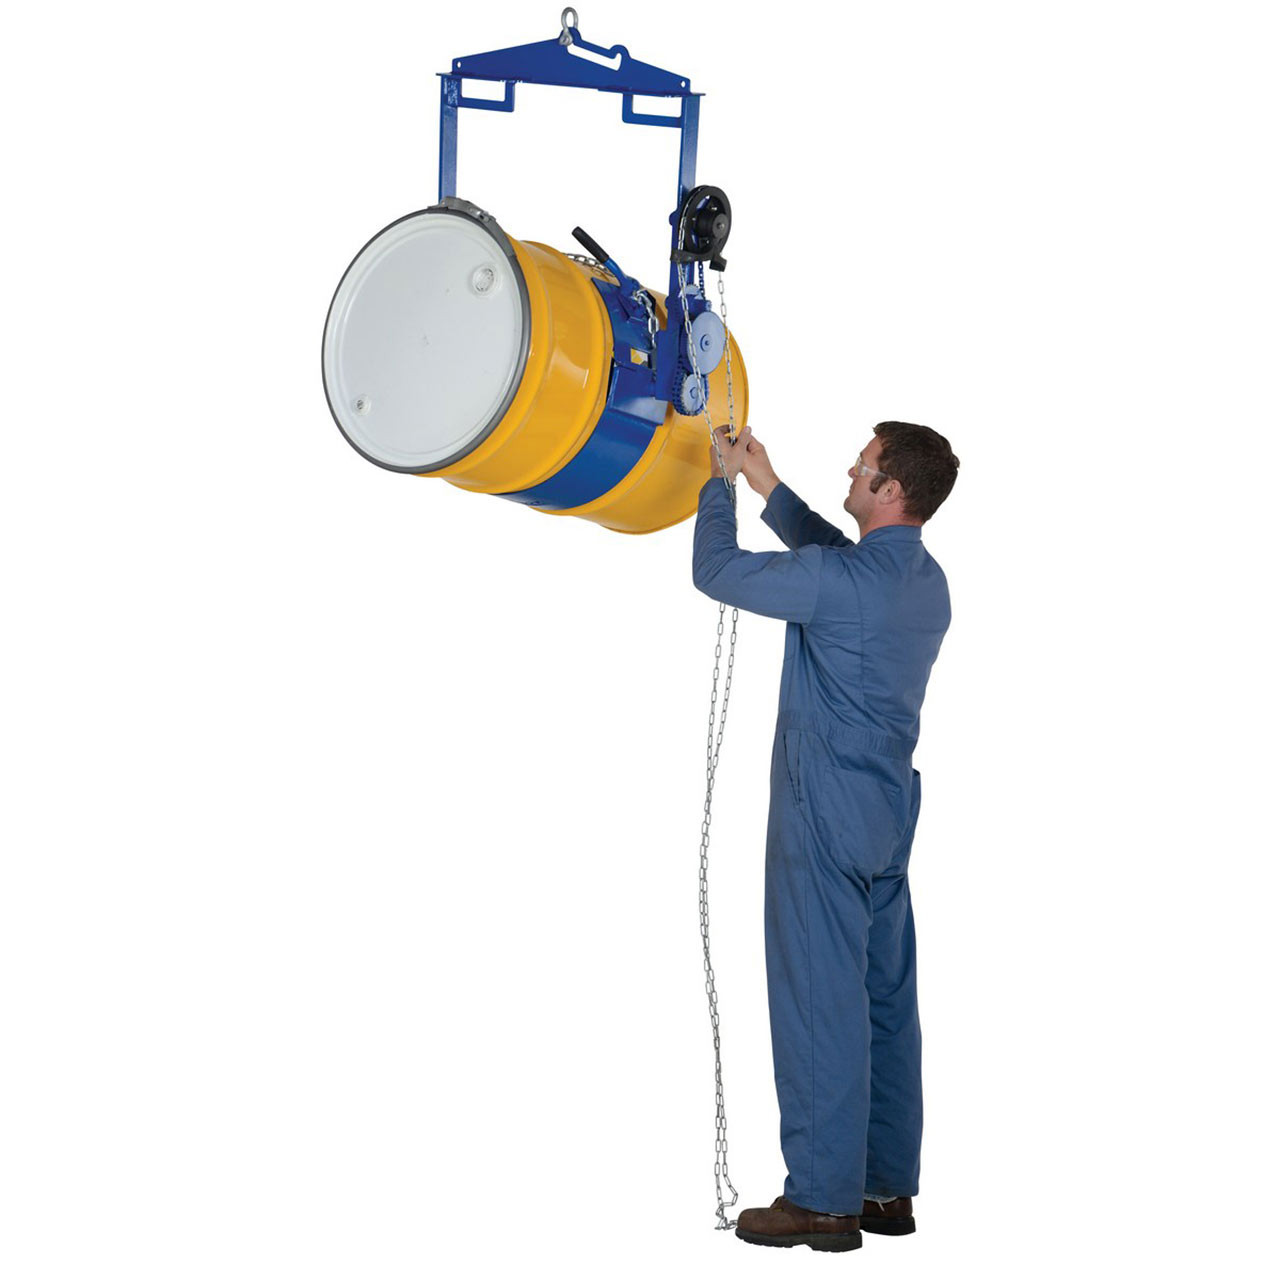 Hoist Mounted Drum Carriers/Rotator In Action